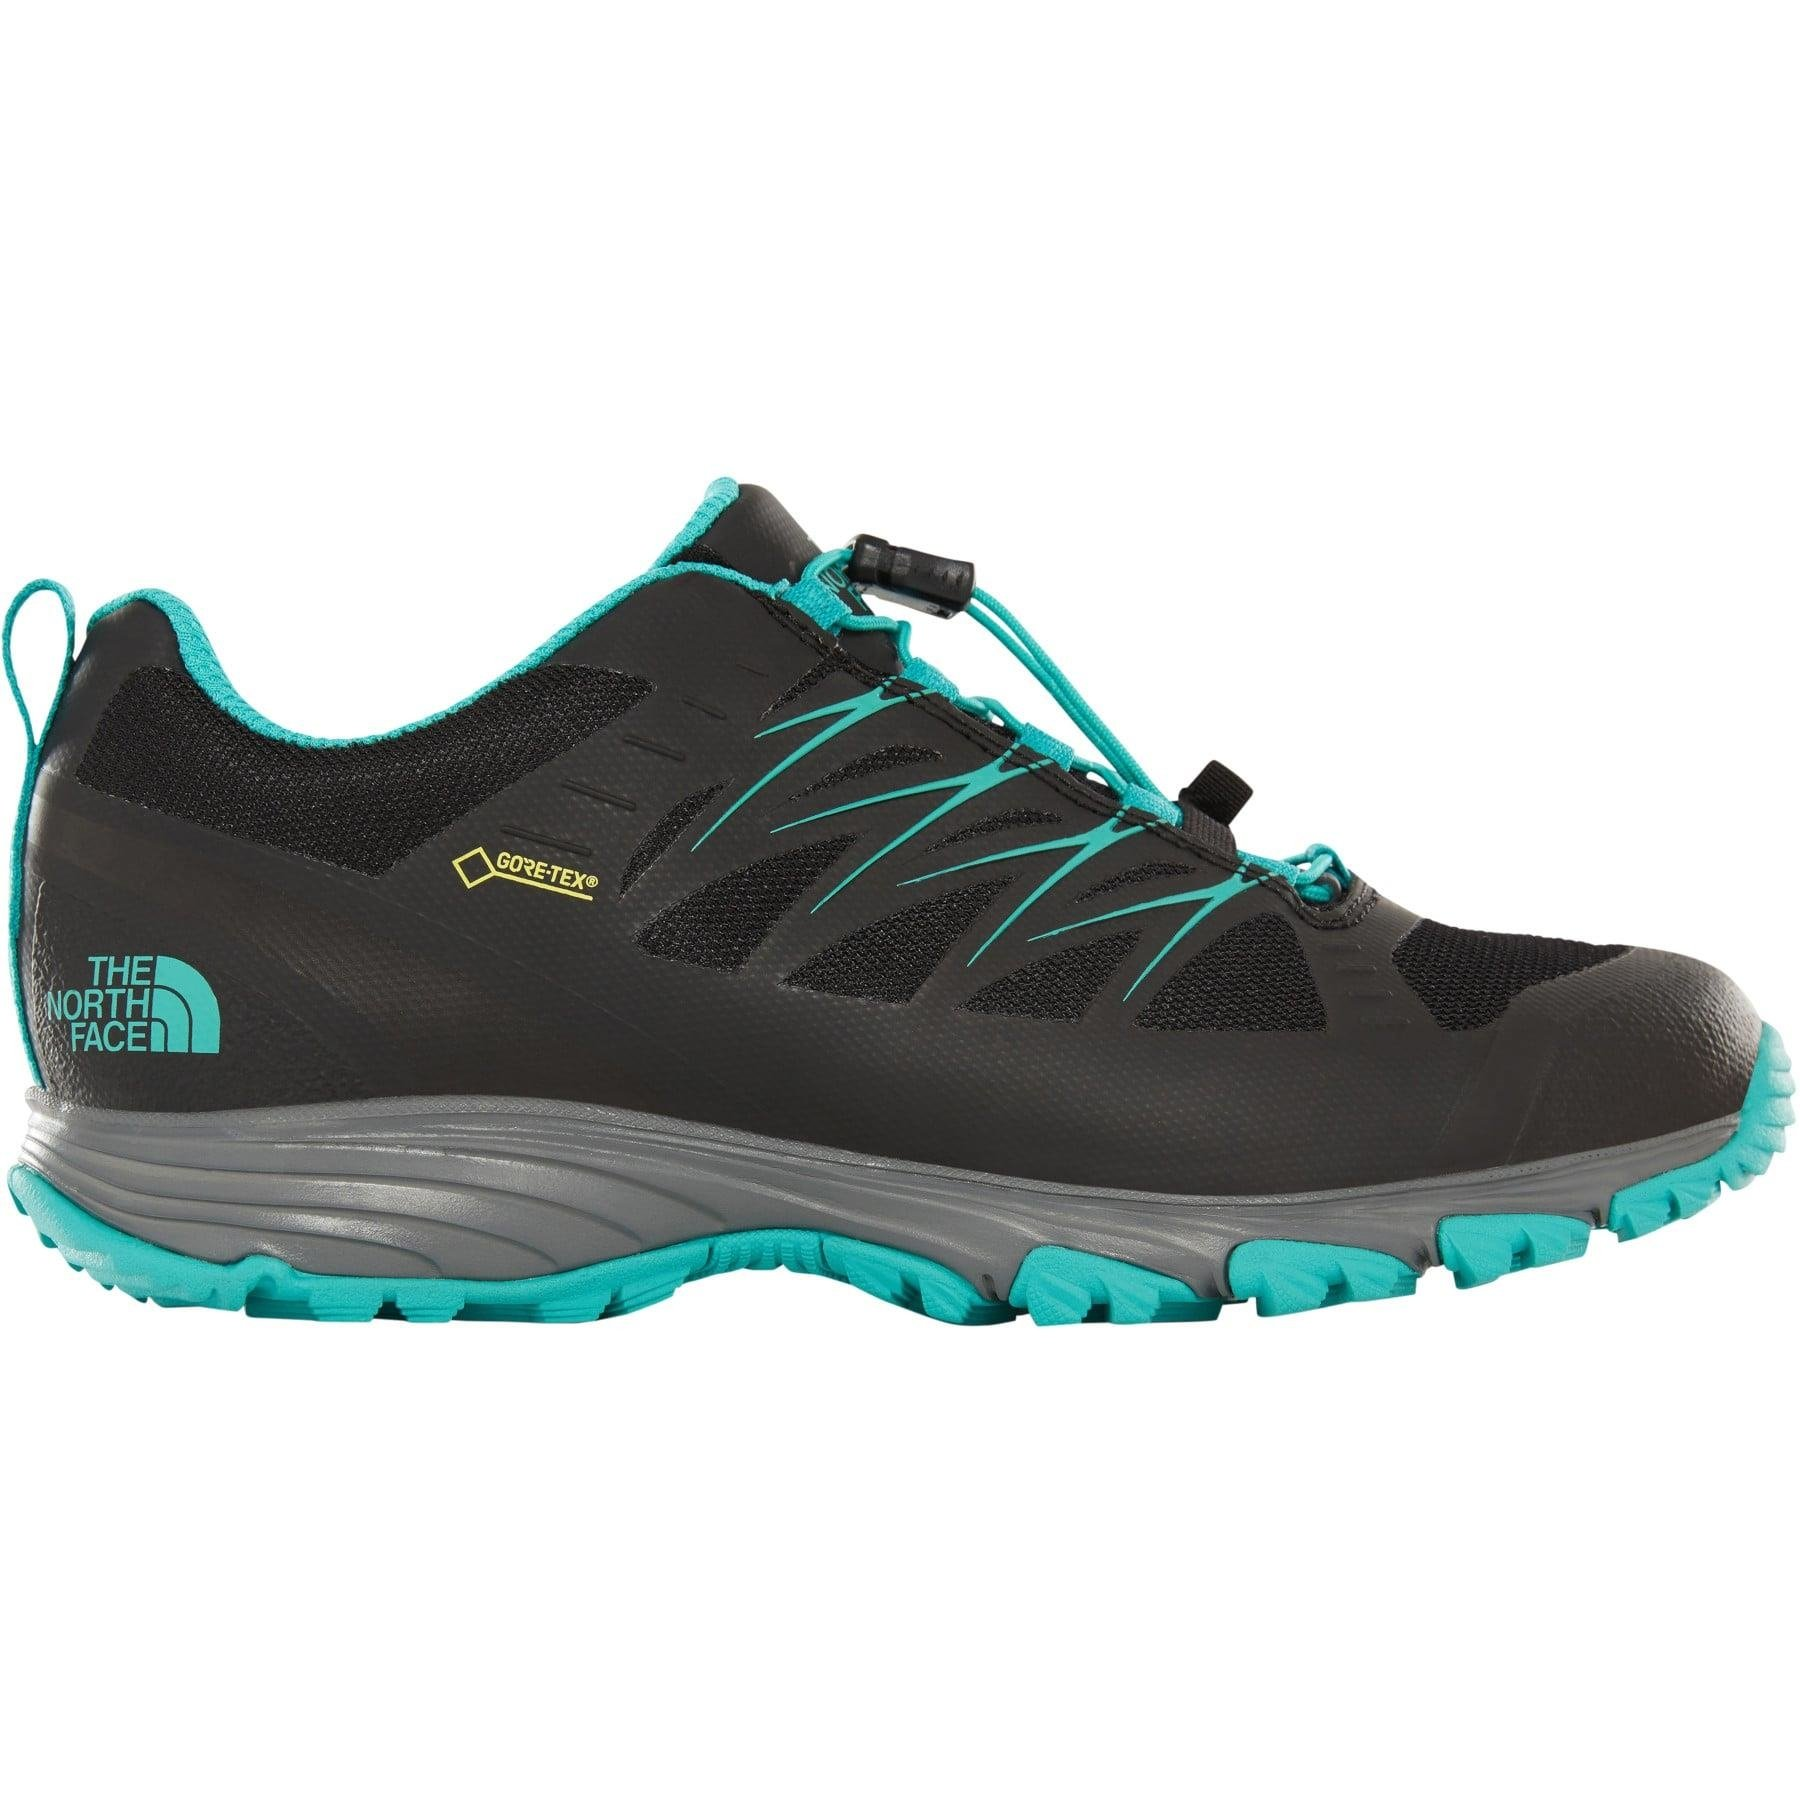 Buty trekkingowe niskie The North Face Venture Fastlace GTX T93FYZC5V